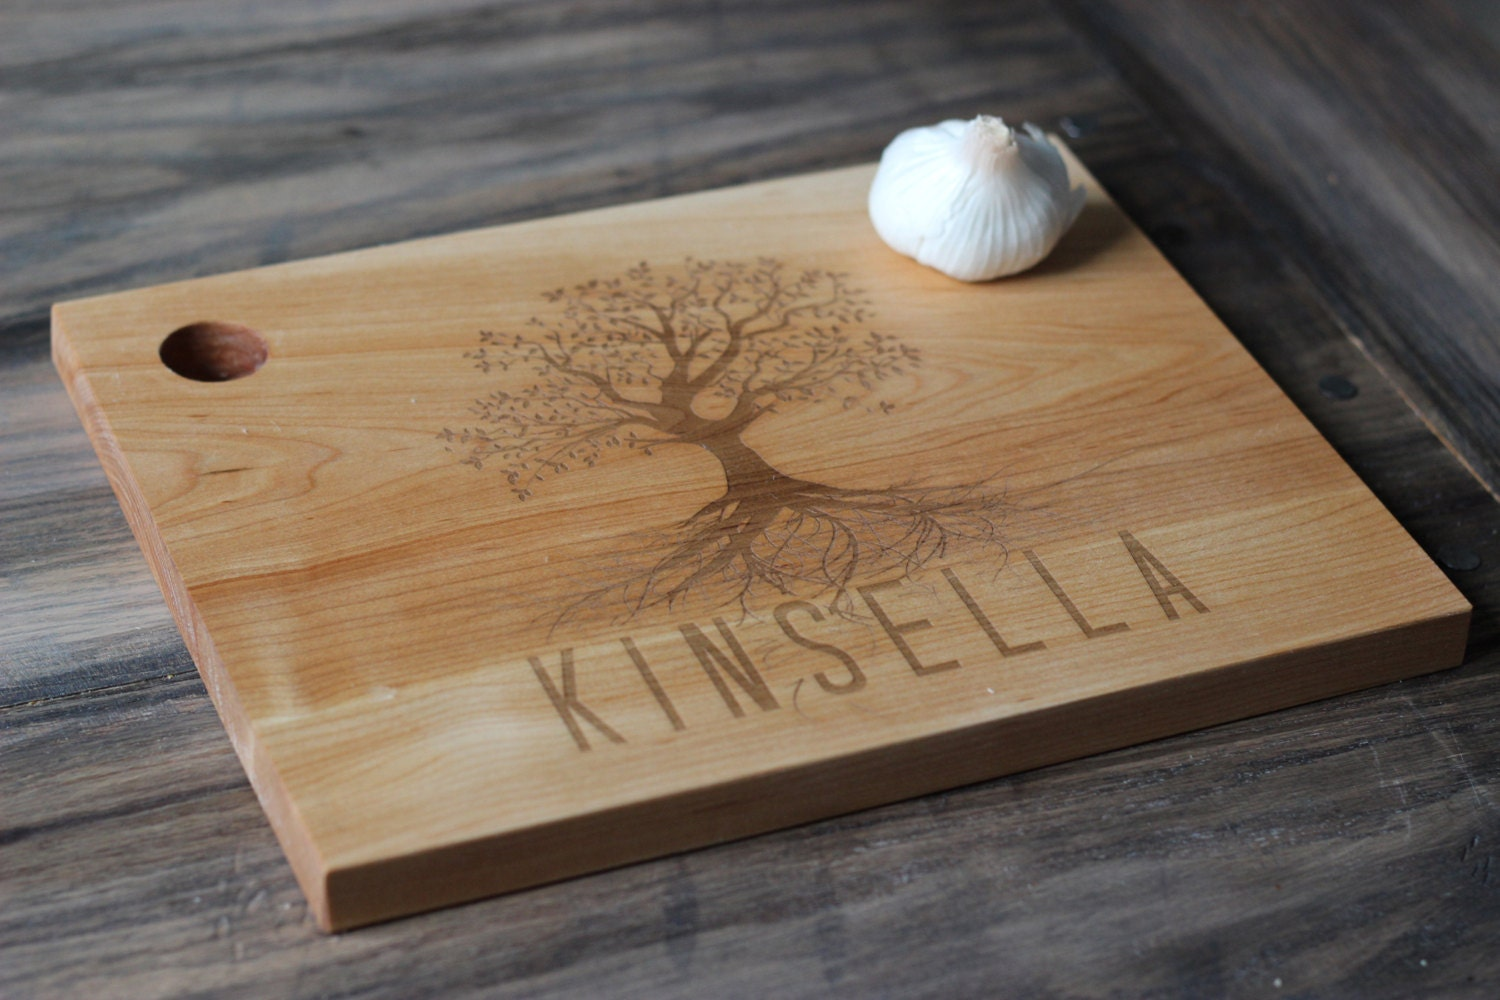 custom engraved wood cutting boards unique design with tree. Black Bedroom Furniture Sets. Home Design Ideas